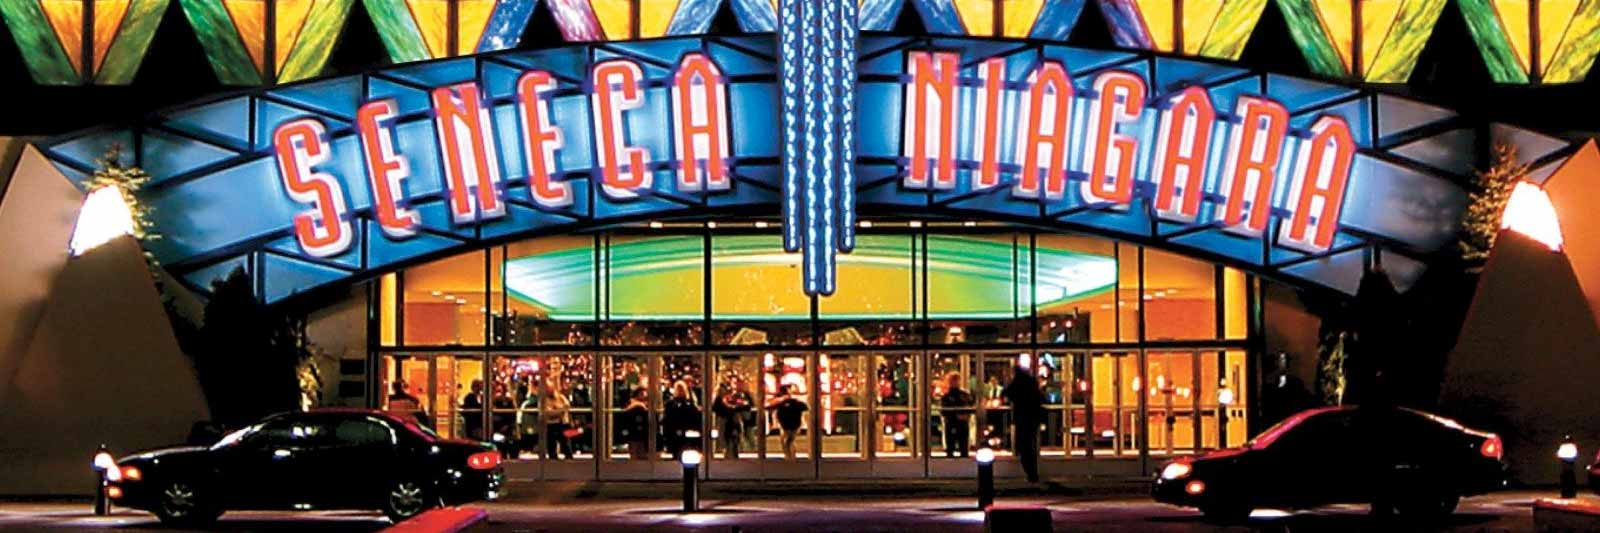 Niagra falls casino package simulated slot machines